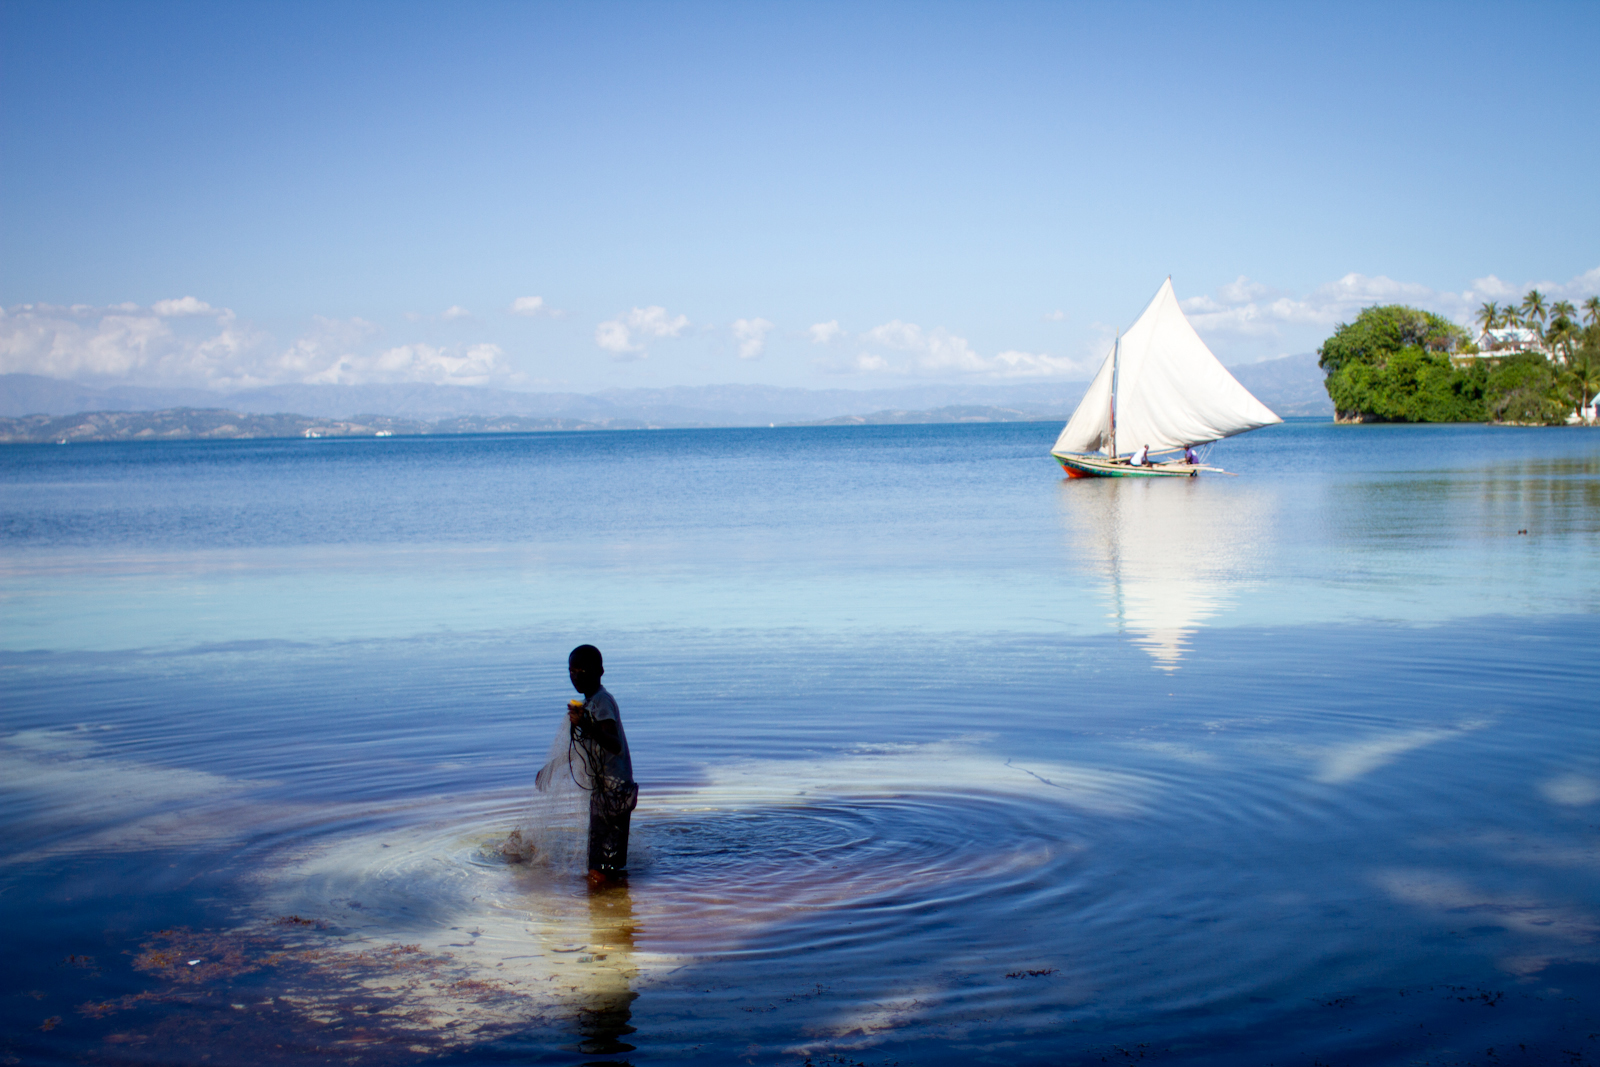 In this December 2014 photo, a boy cleans a fishing net in the waters off the Haitian island of Ile-a-Vache. haiti's southern peninsula, which was the hardest hit by Hurricane Matthew this month, is in the distance. (Photo by Jacob Kushner and used here with permission)